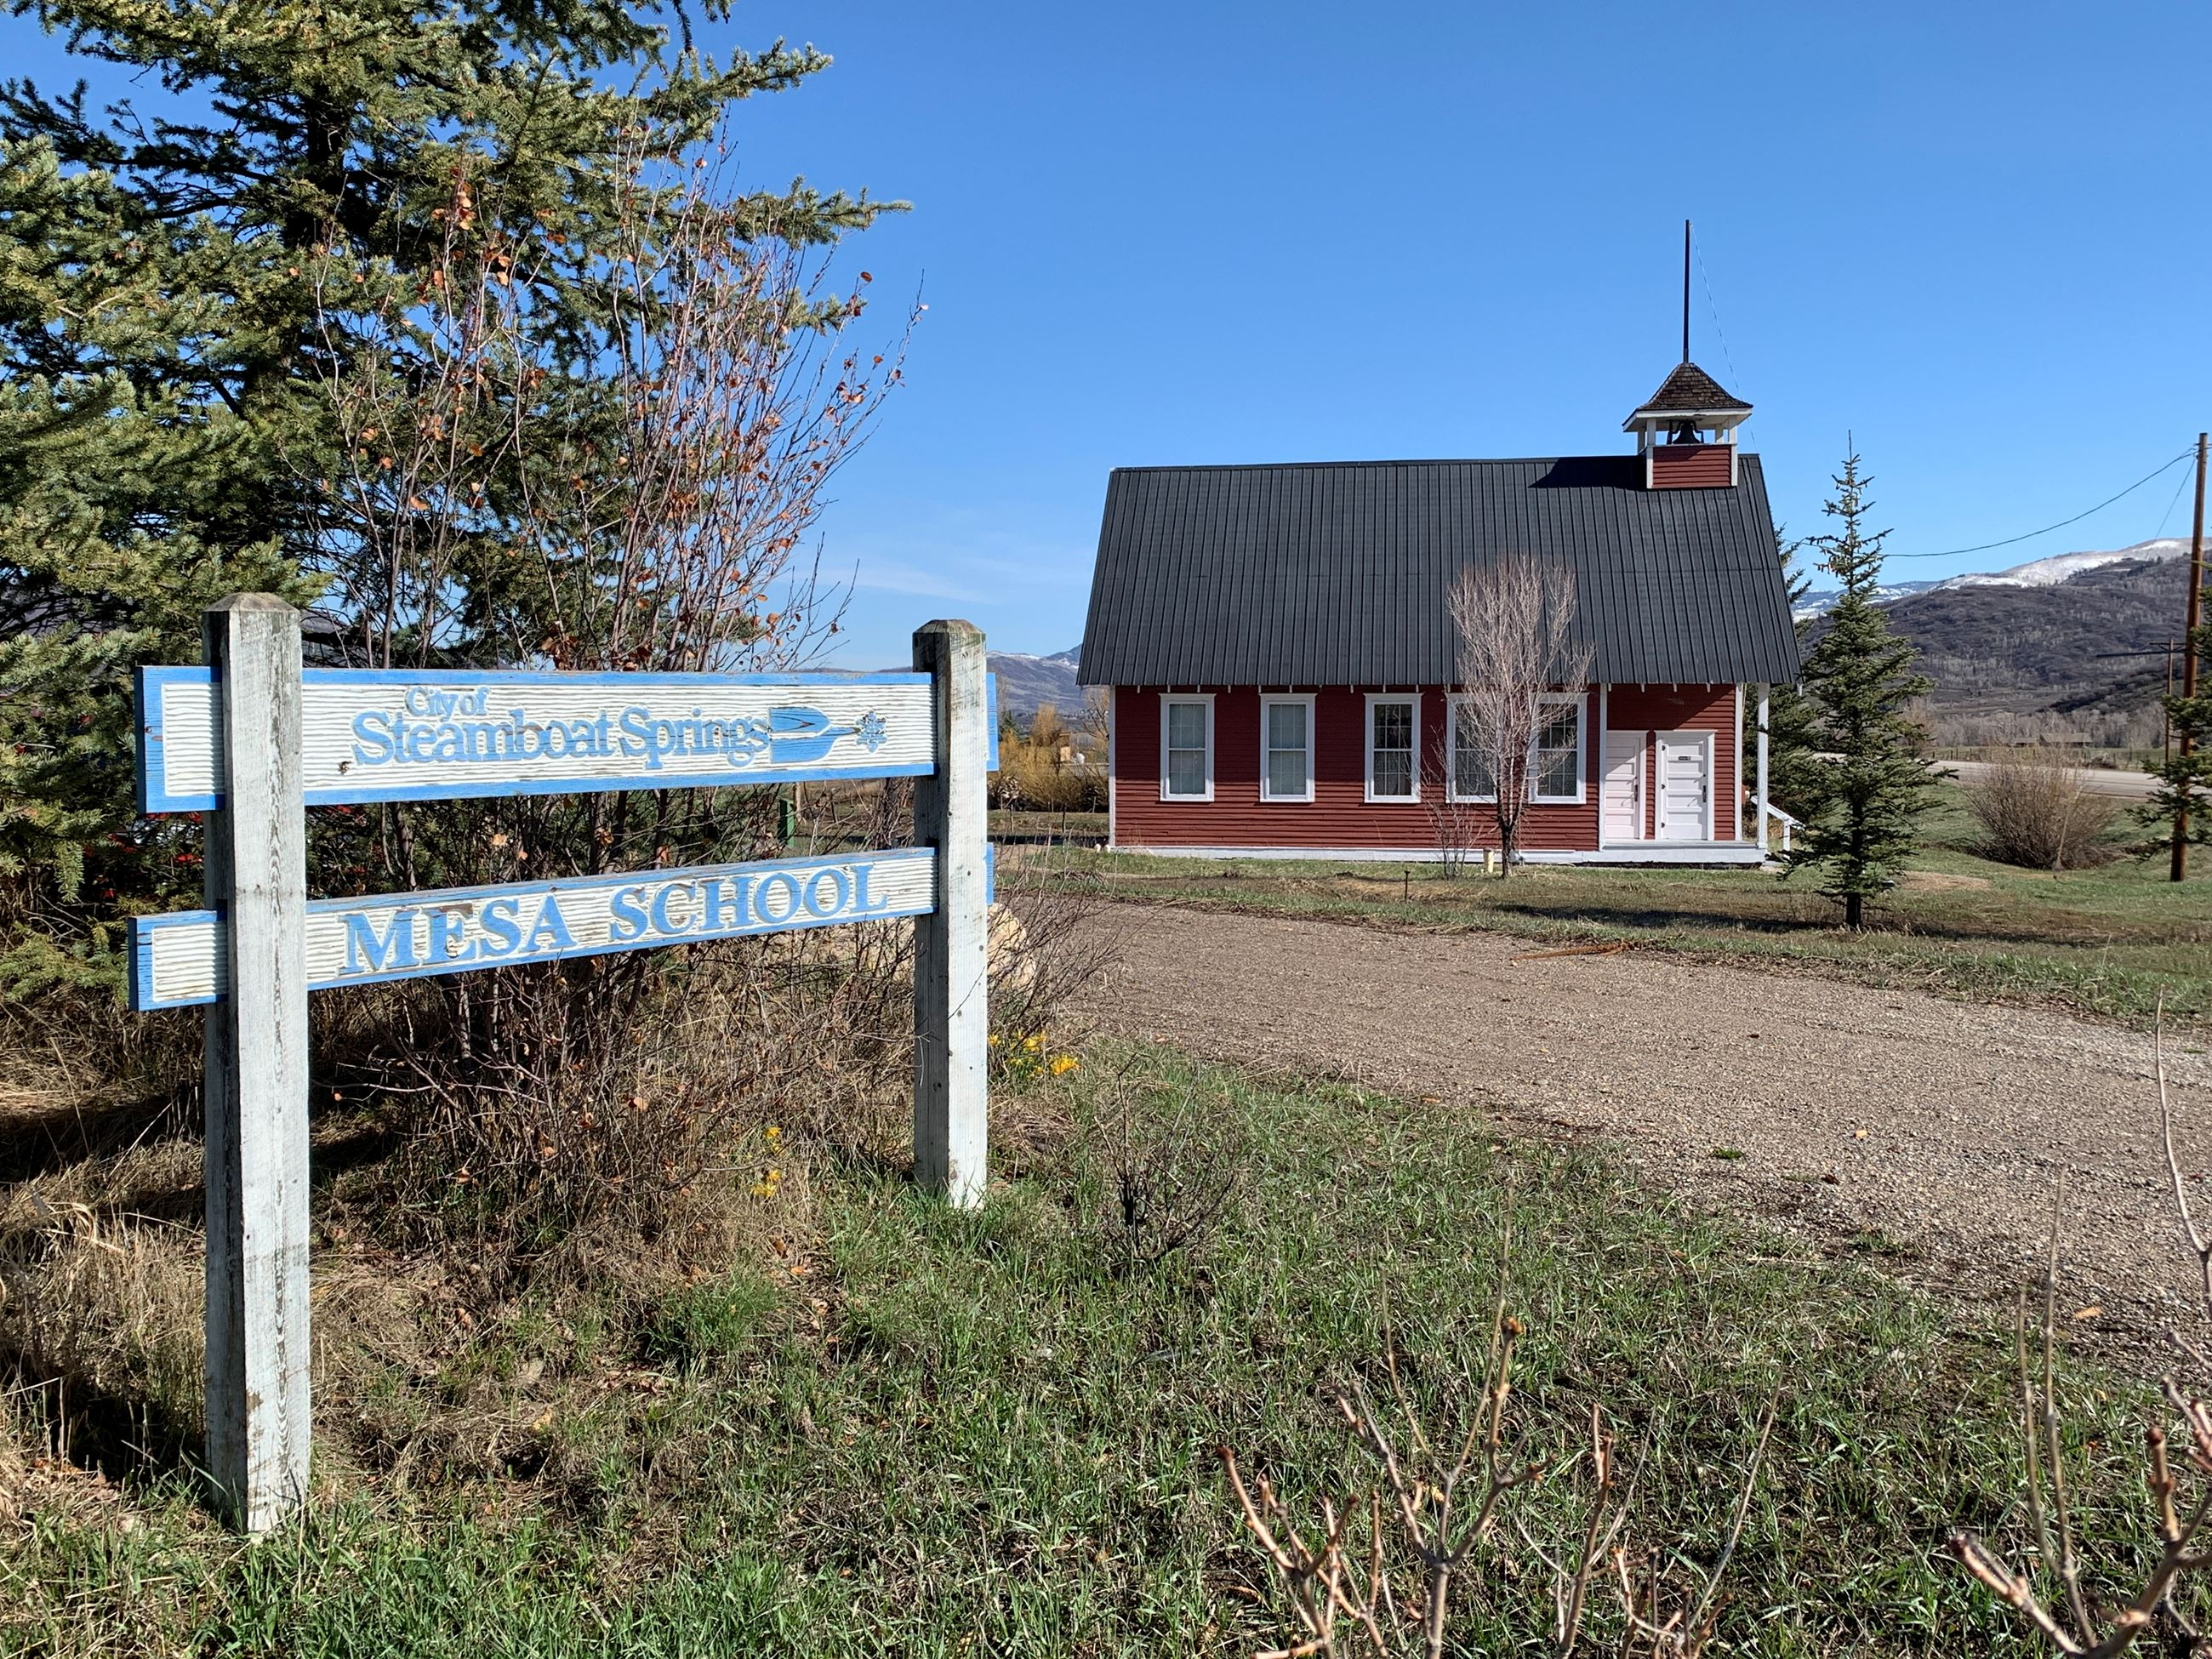 Mesa School House & Sign